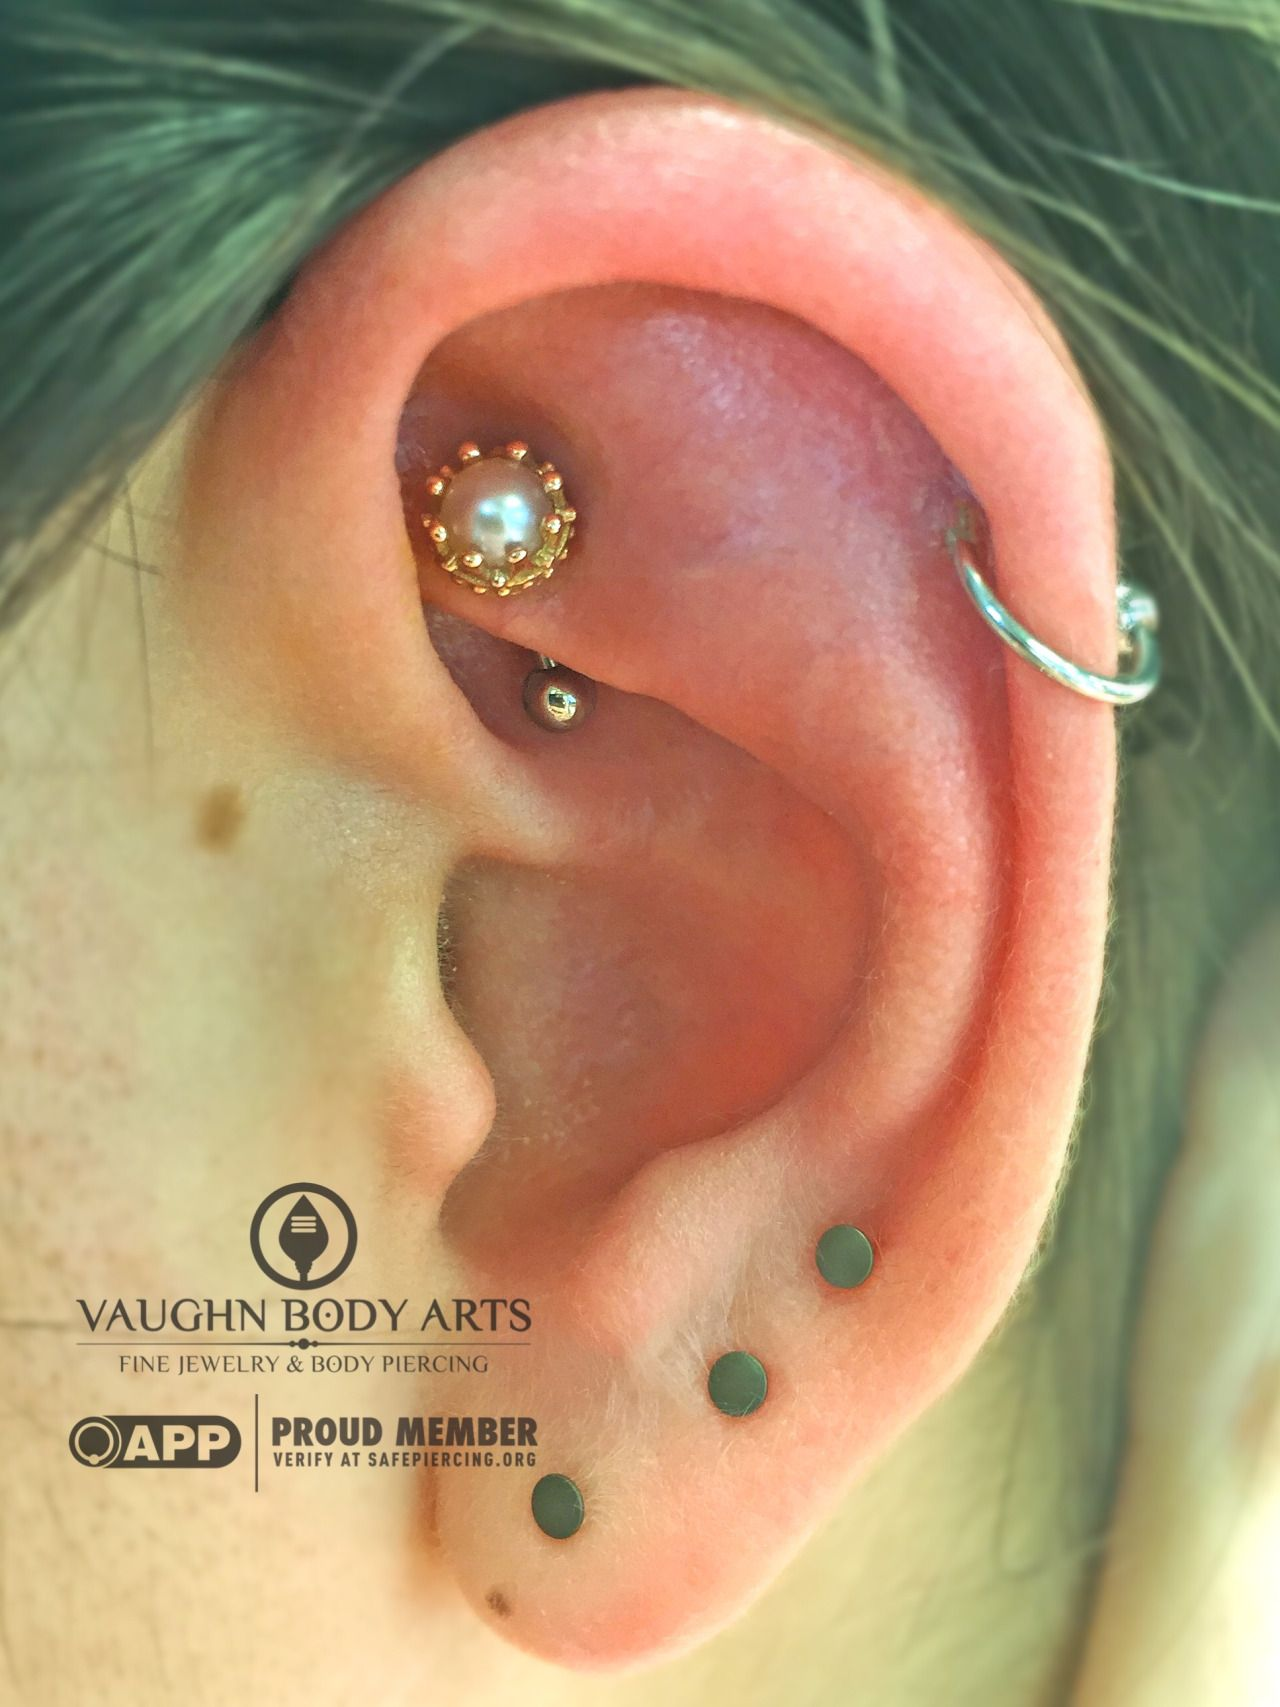 This Rook Piercing Adam Did For Joy Is Simply Stunning Joy Picked Out A  Lovely